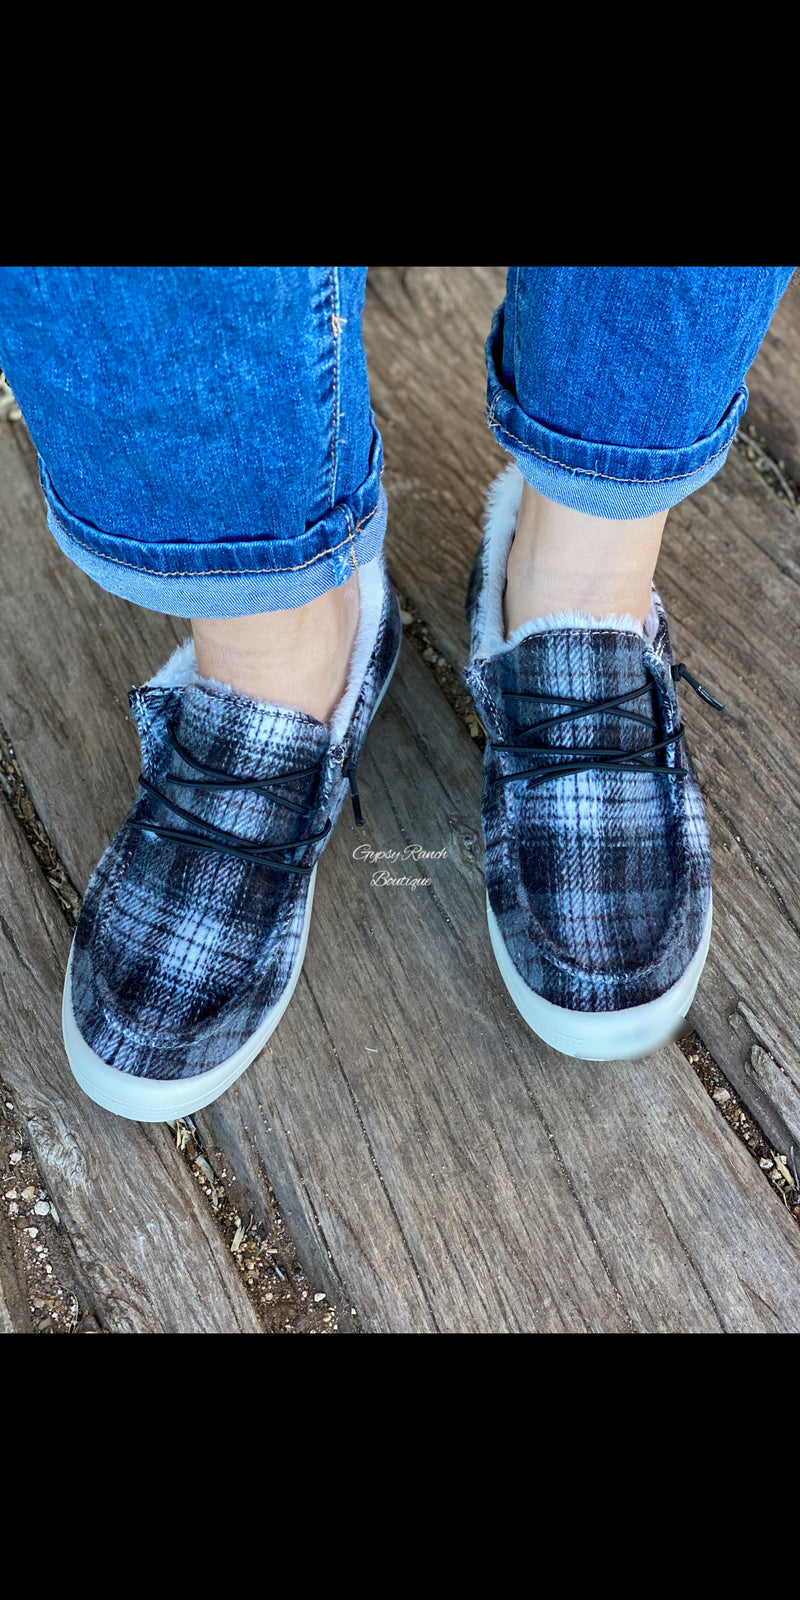 Caxton Black Plaid Slip On